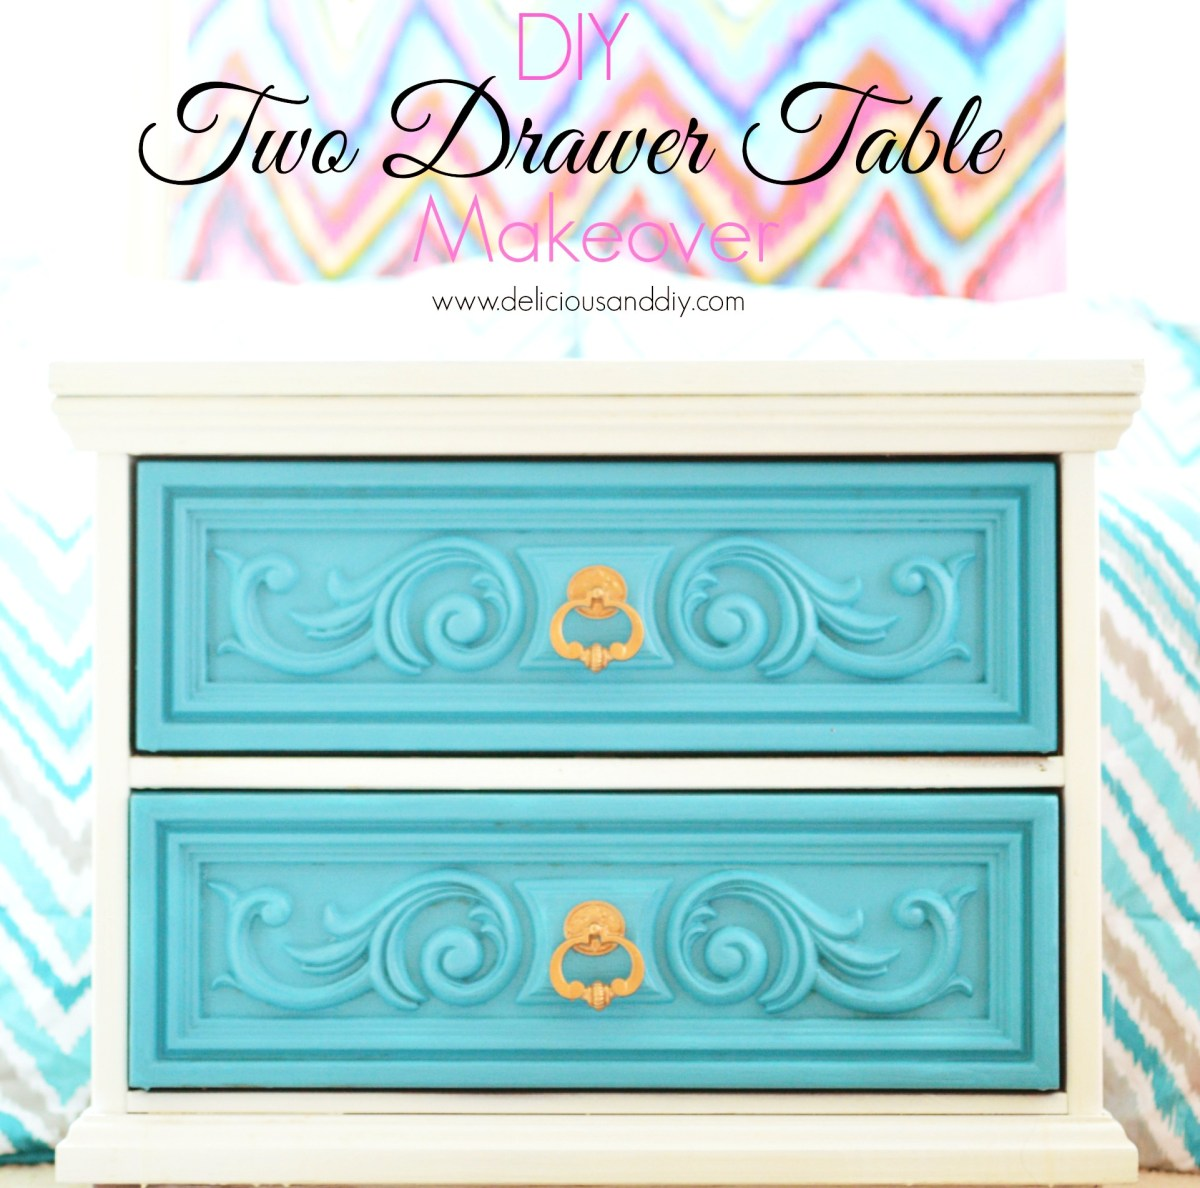 DIY Two Drawer Table Makeover